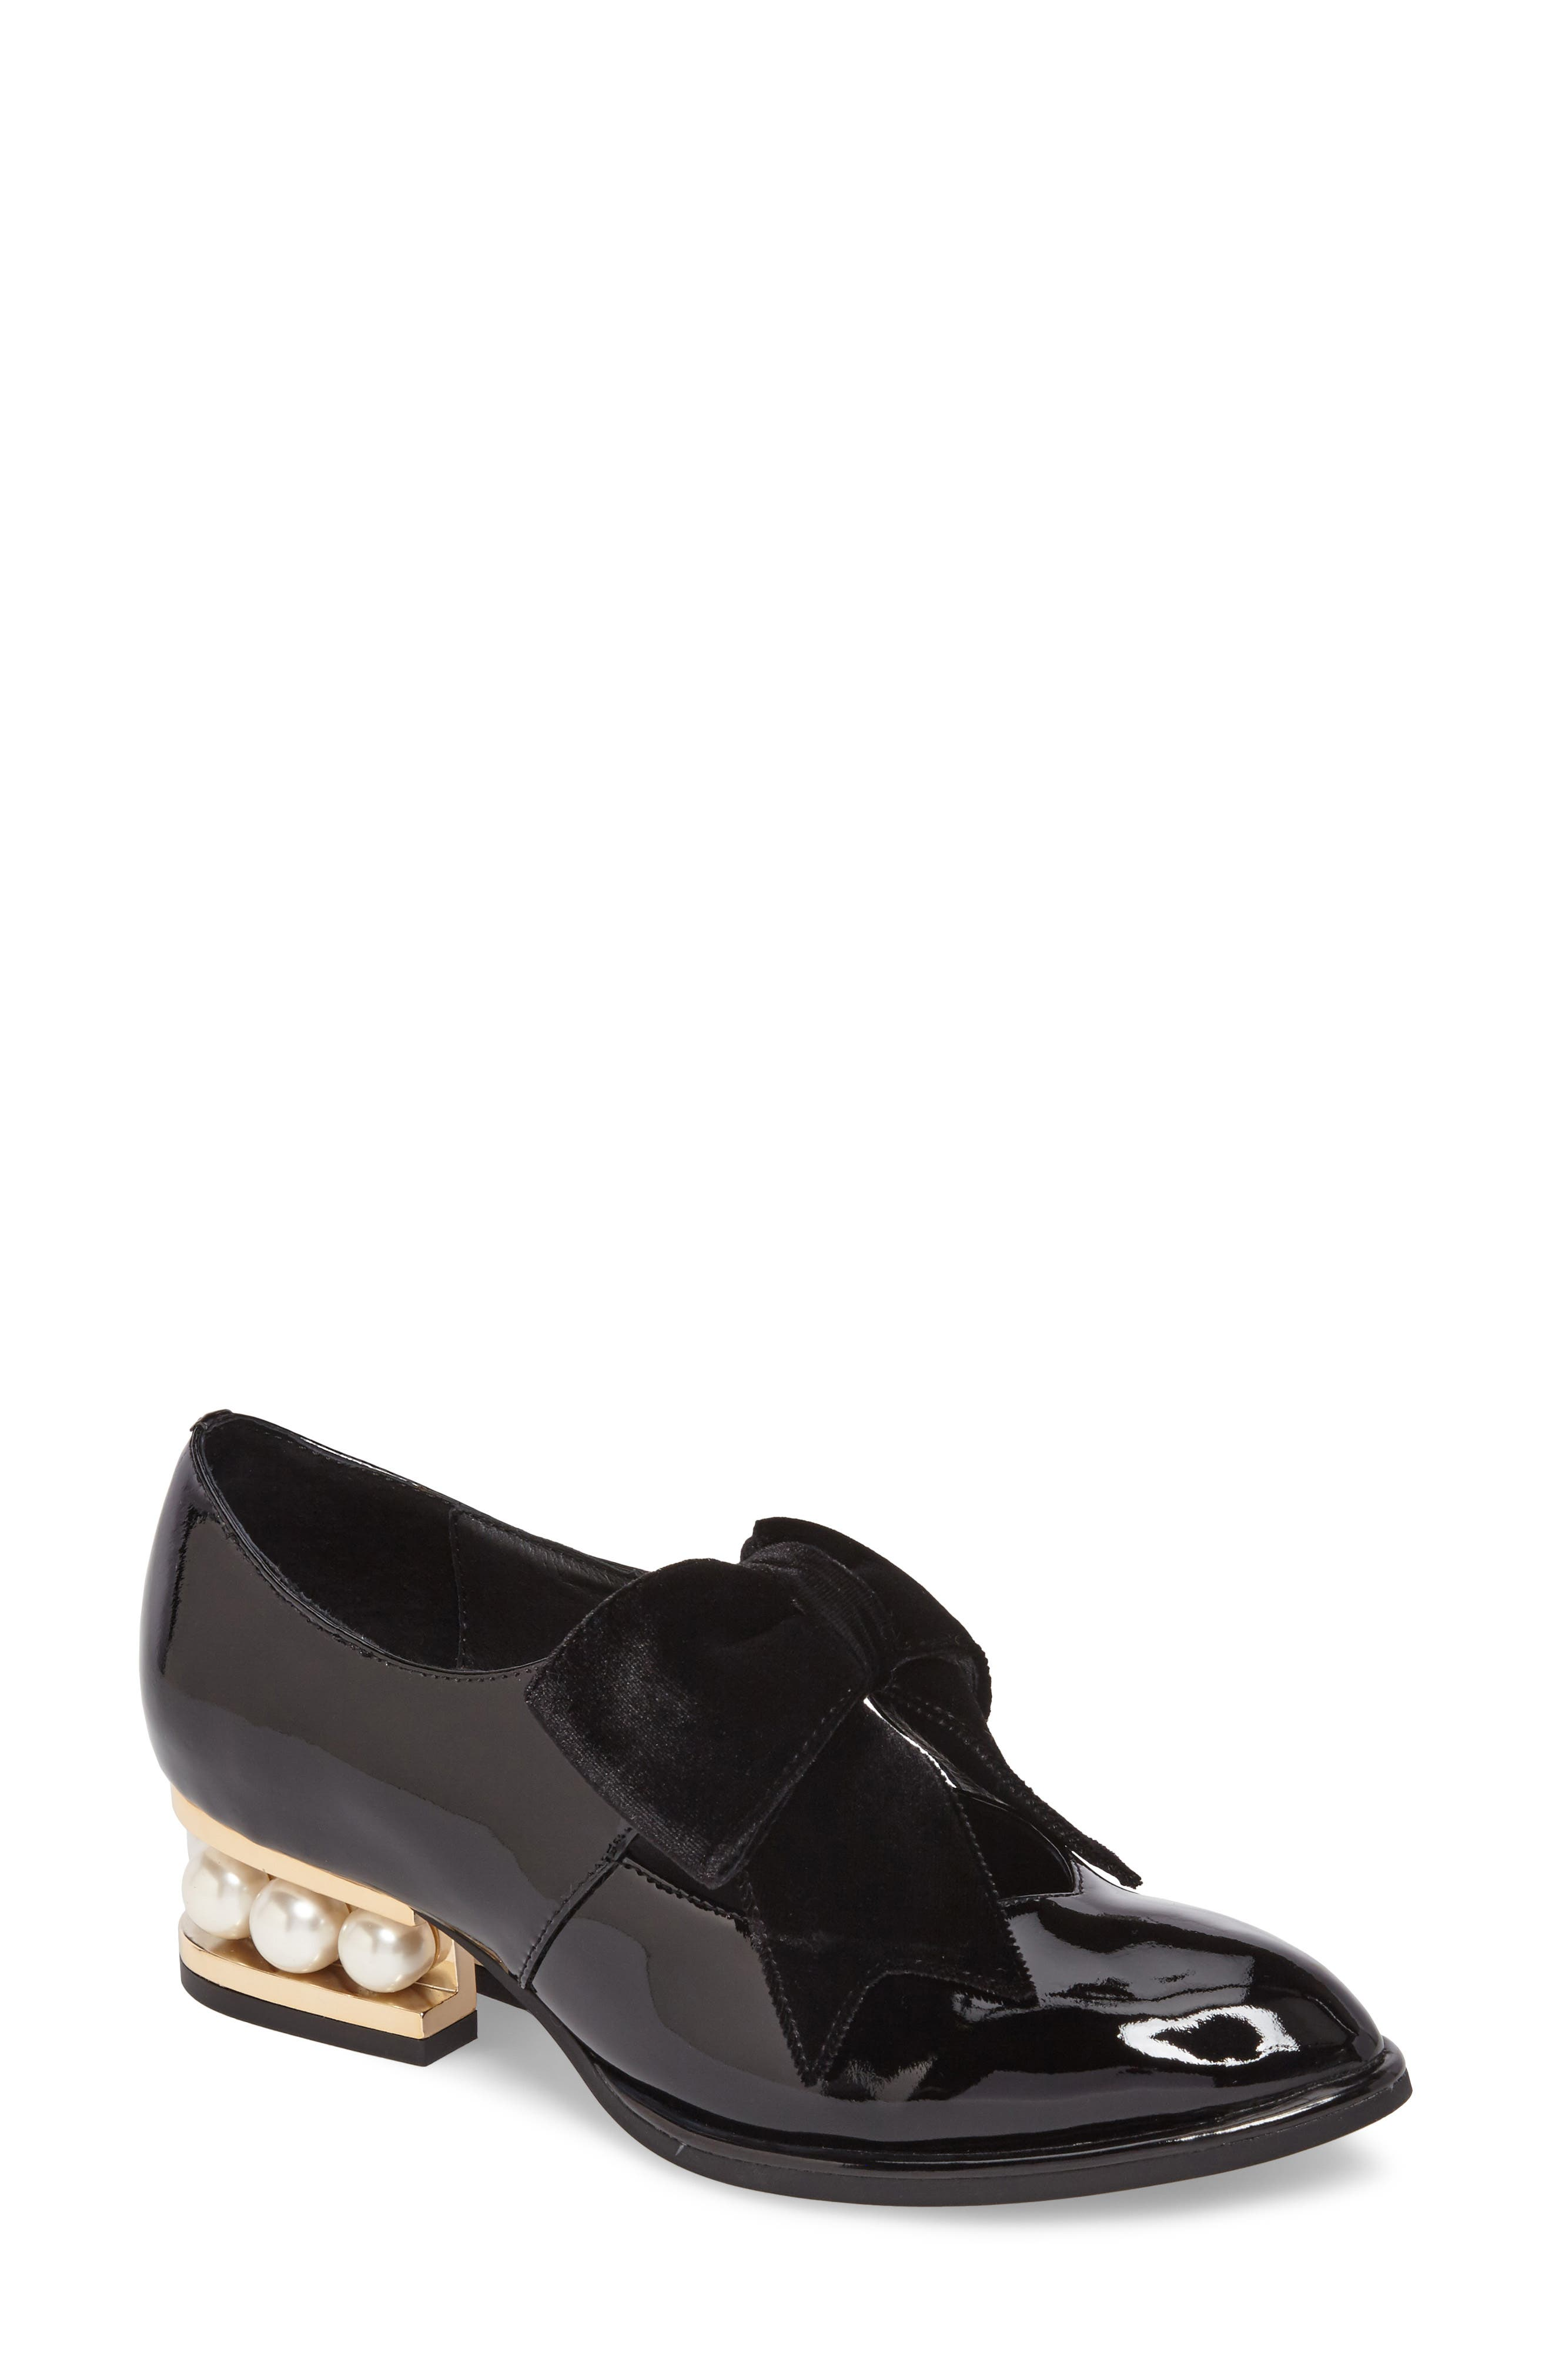 Jeffrey Campbell Cordene Statement Heel Mary Jane (Women)